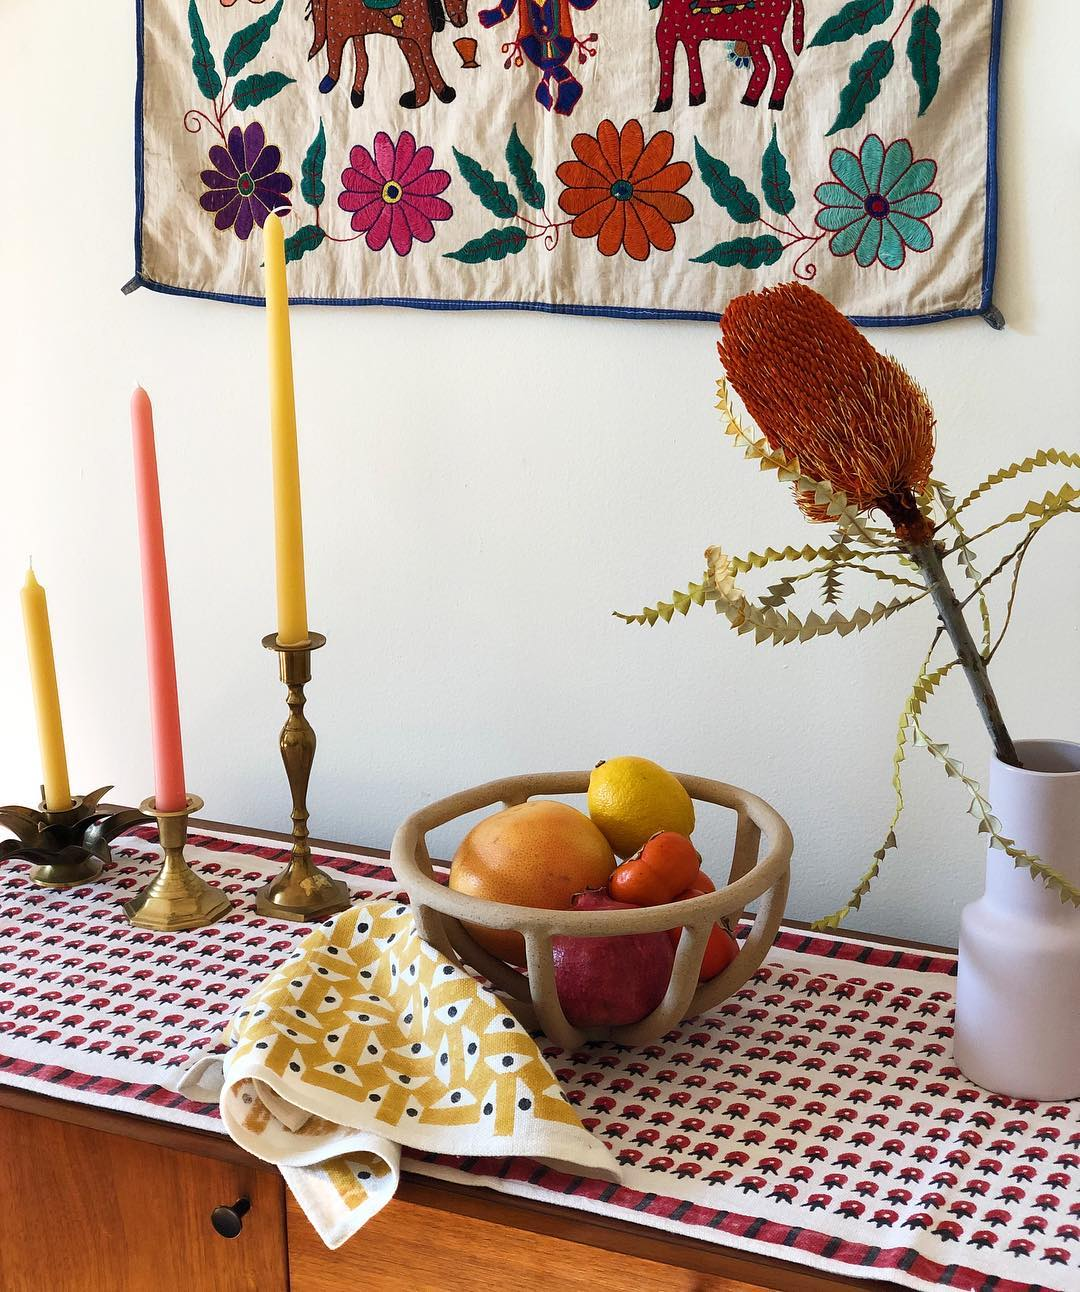 Yellow patterned table runner